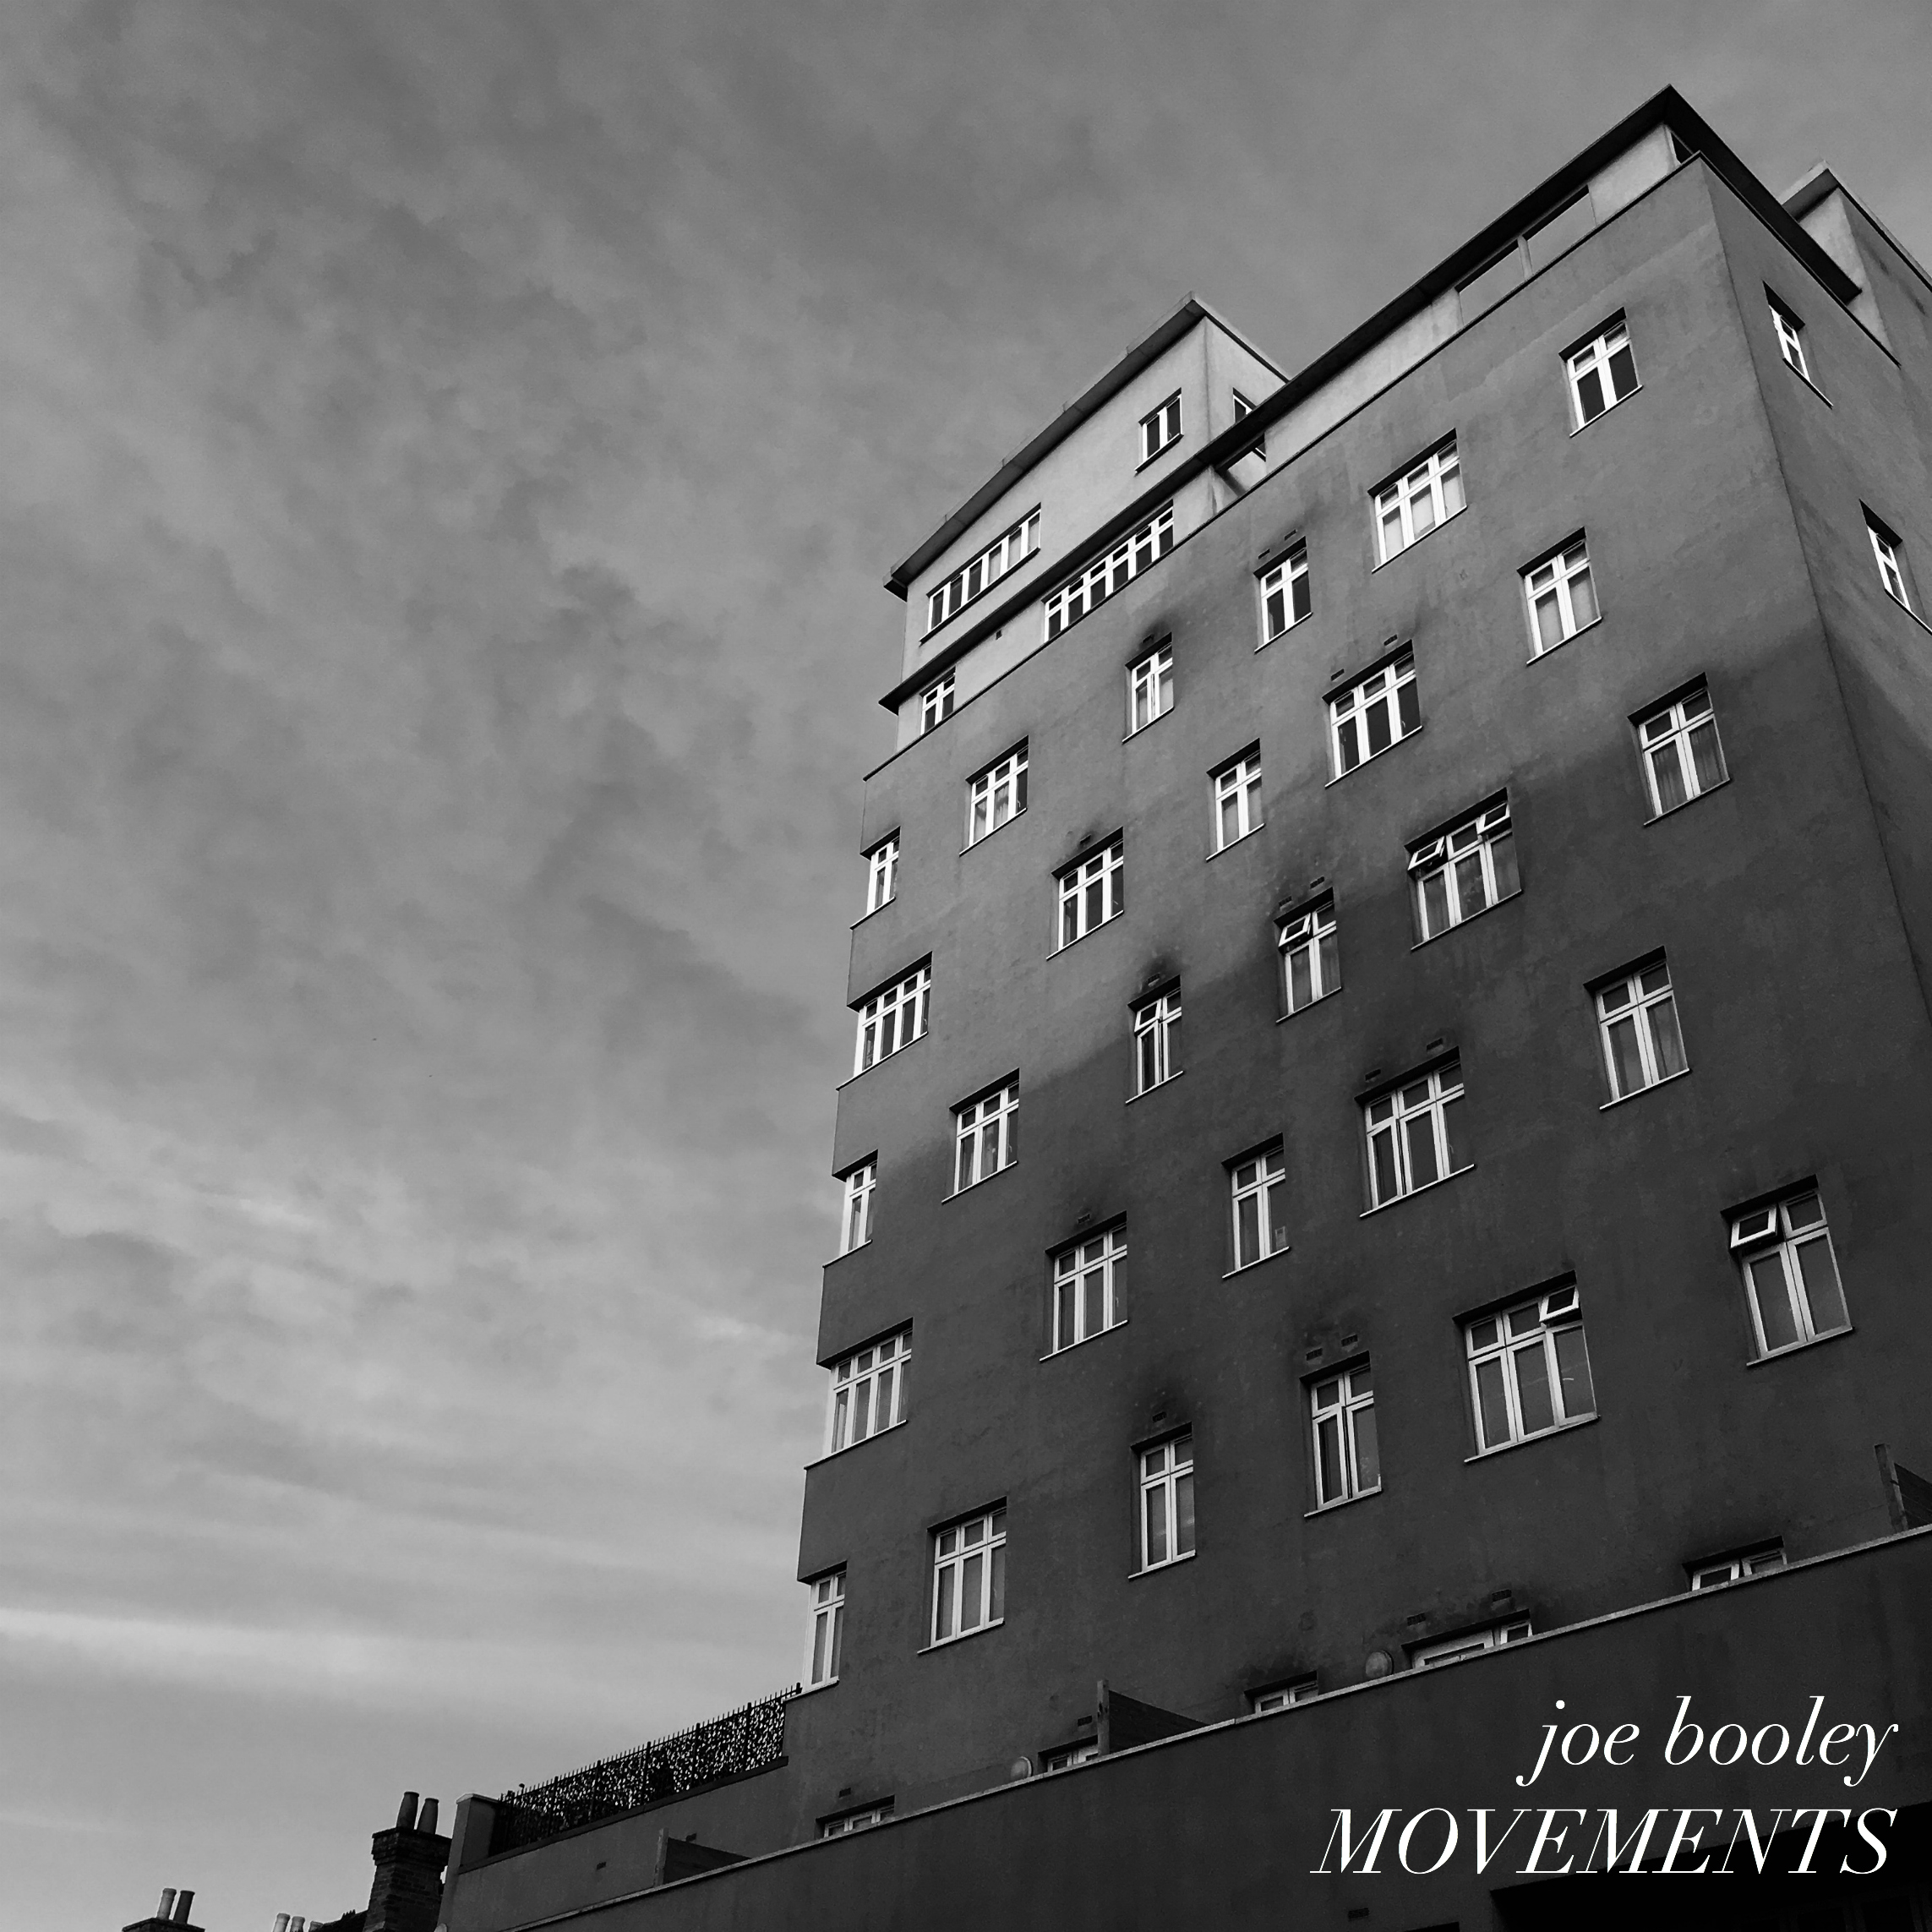 Joe Booley - MOVEMENTS